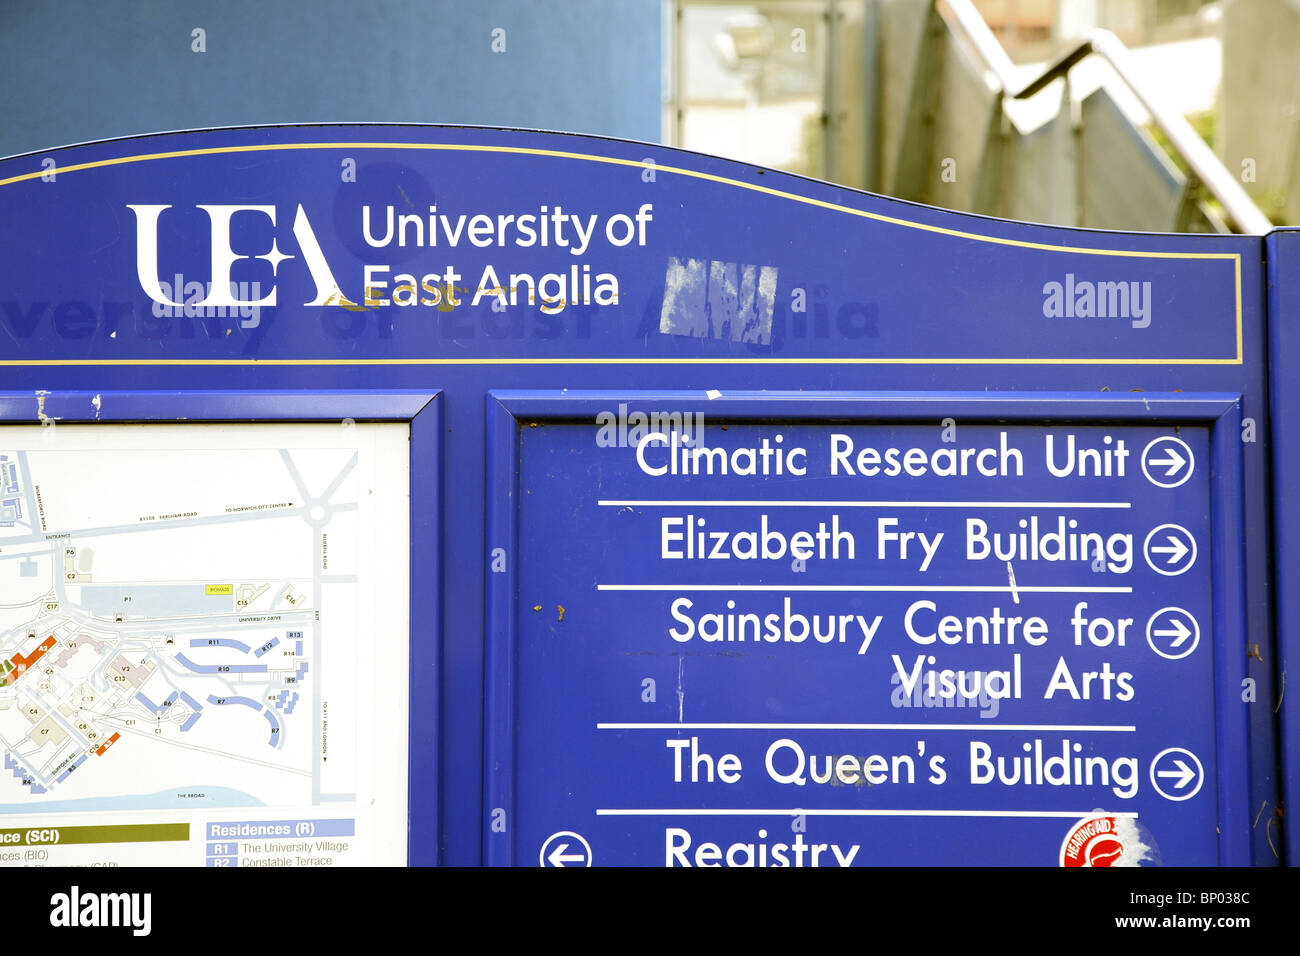 University of East Anglia directions board showing the climatic research unit. - Stock Image